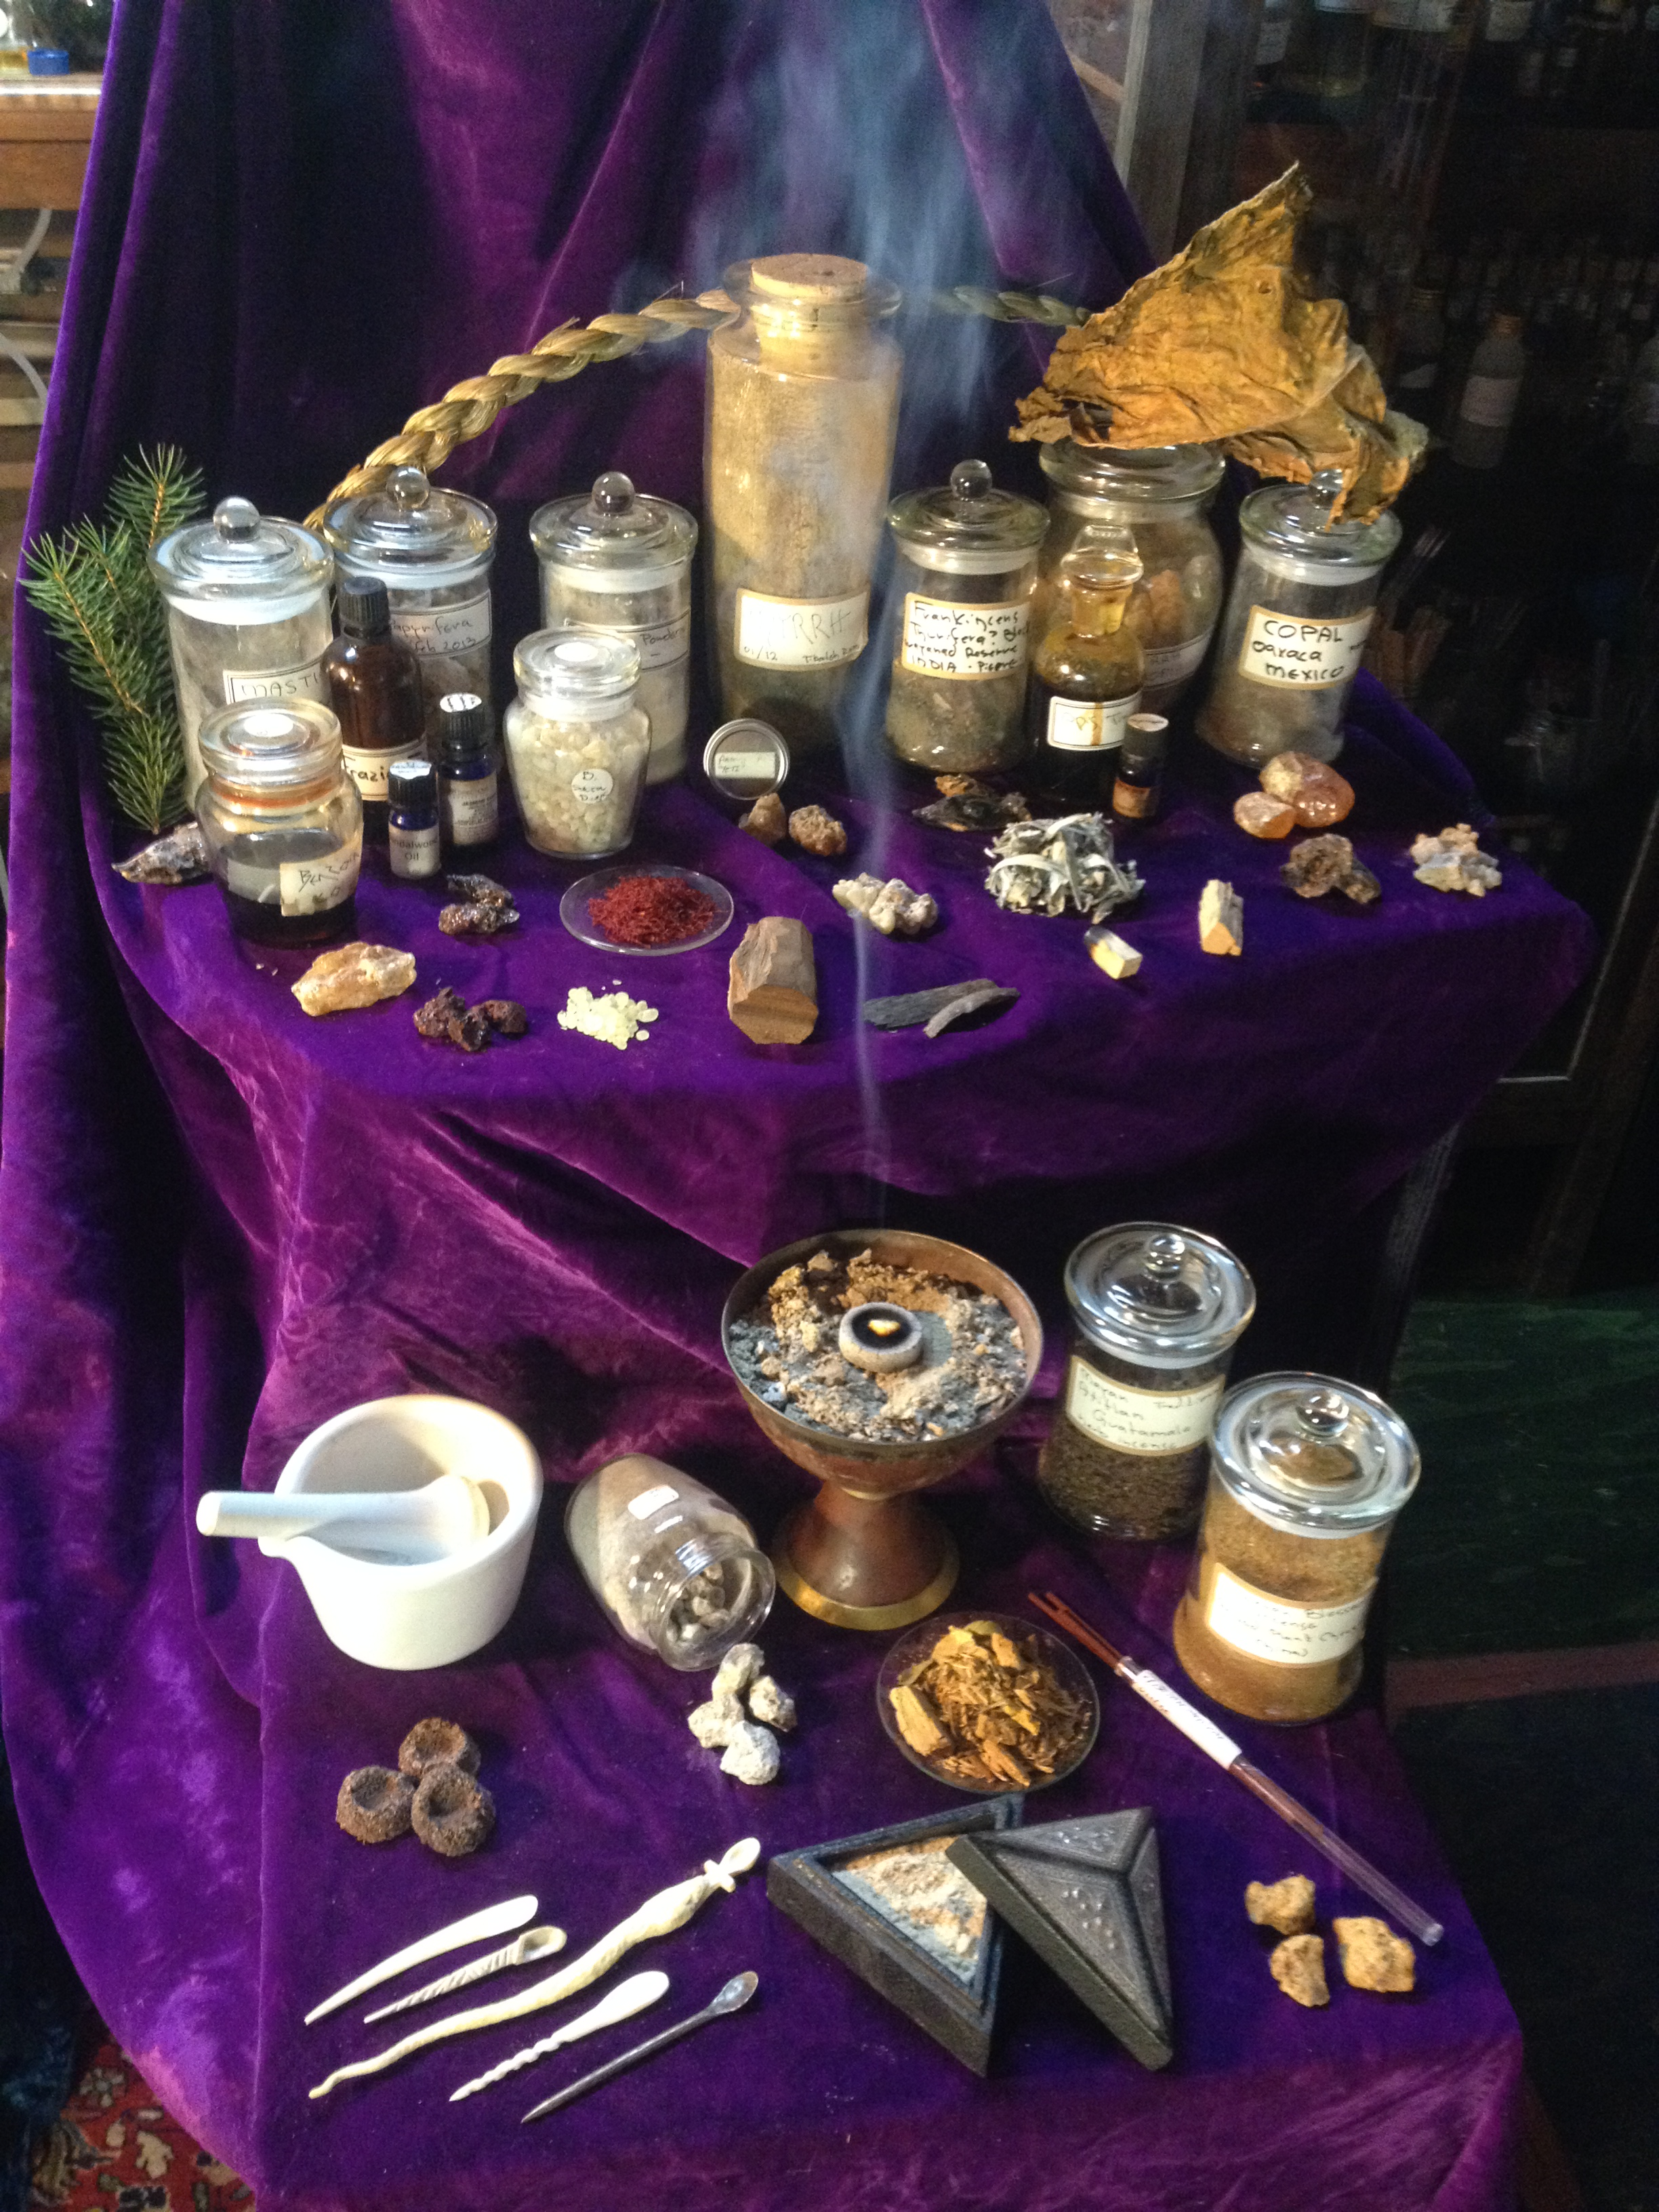 How to use Pine, Spruce and Fir saps for incense and perfume